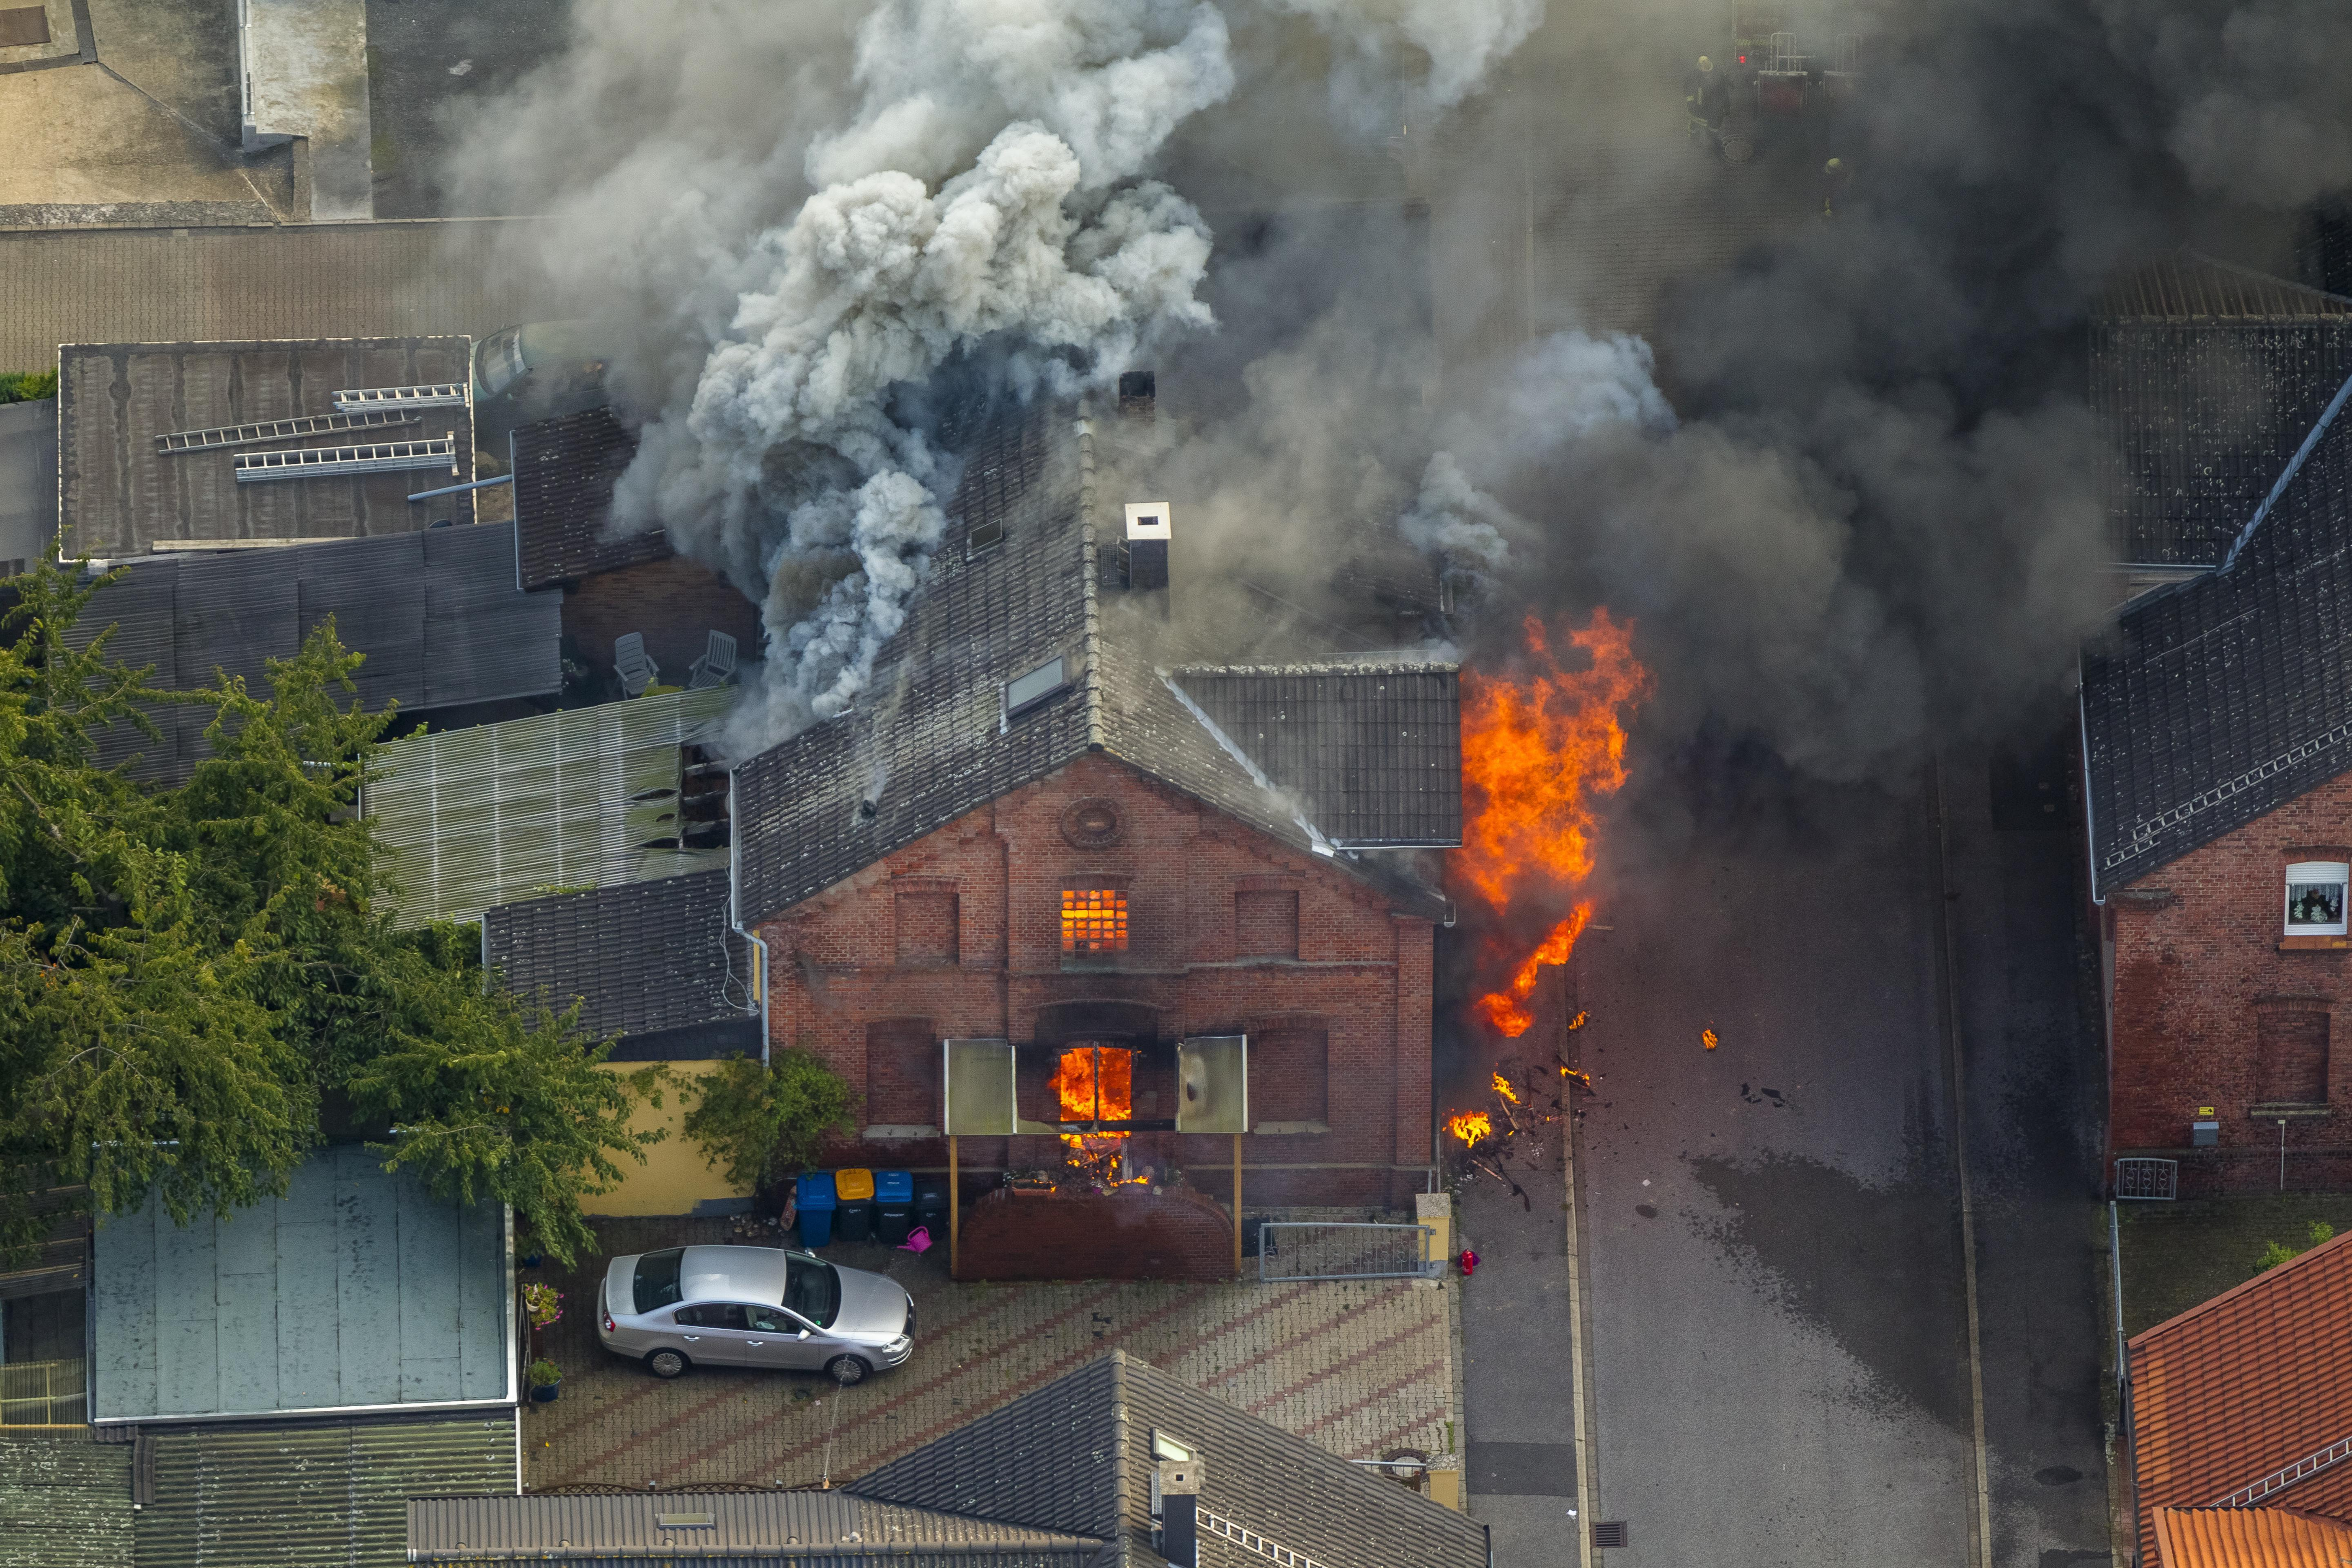 Fire in a pithead building, Gustavstrasse street, aerial, Boenen, Ruhr district, North Rhine-Westphalia, Germany